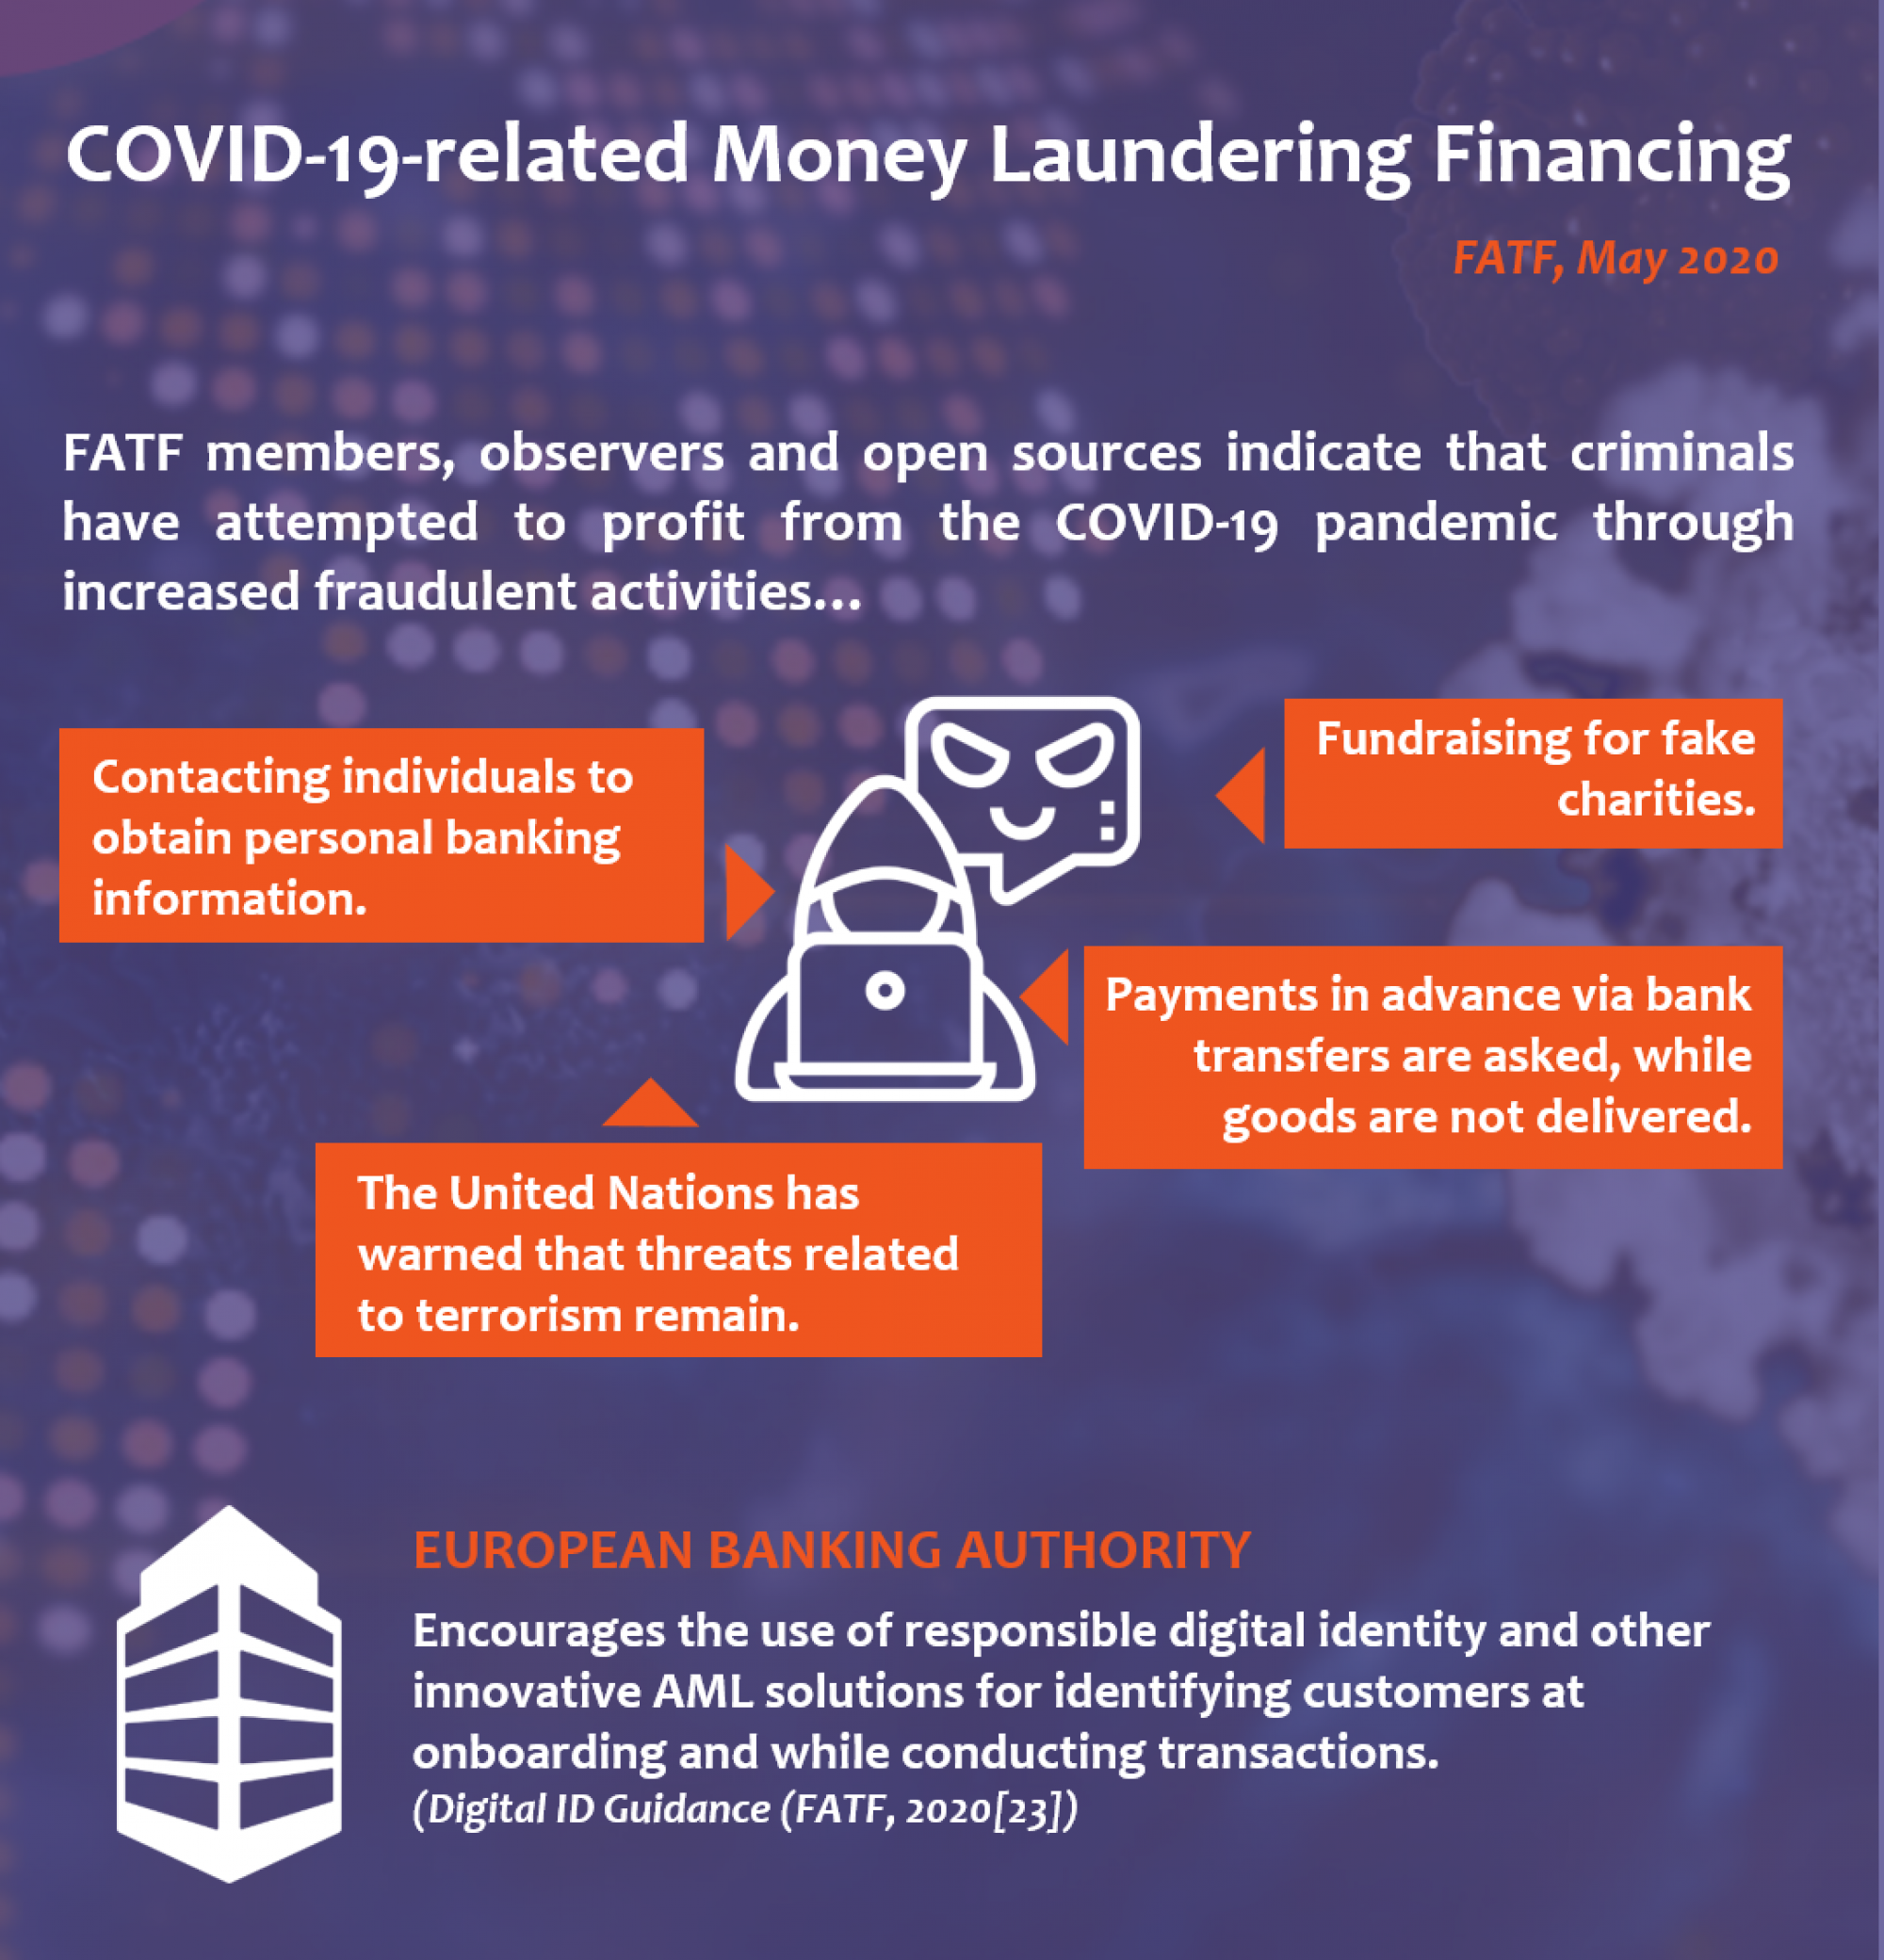 COVID-19-related Money Laundering Financing